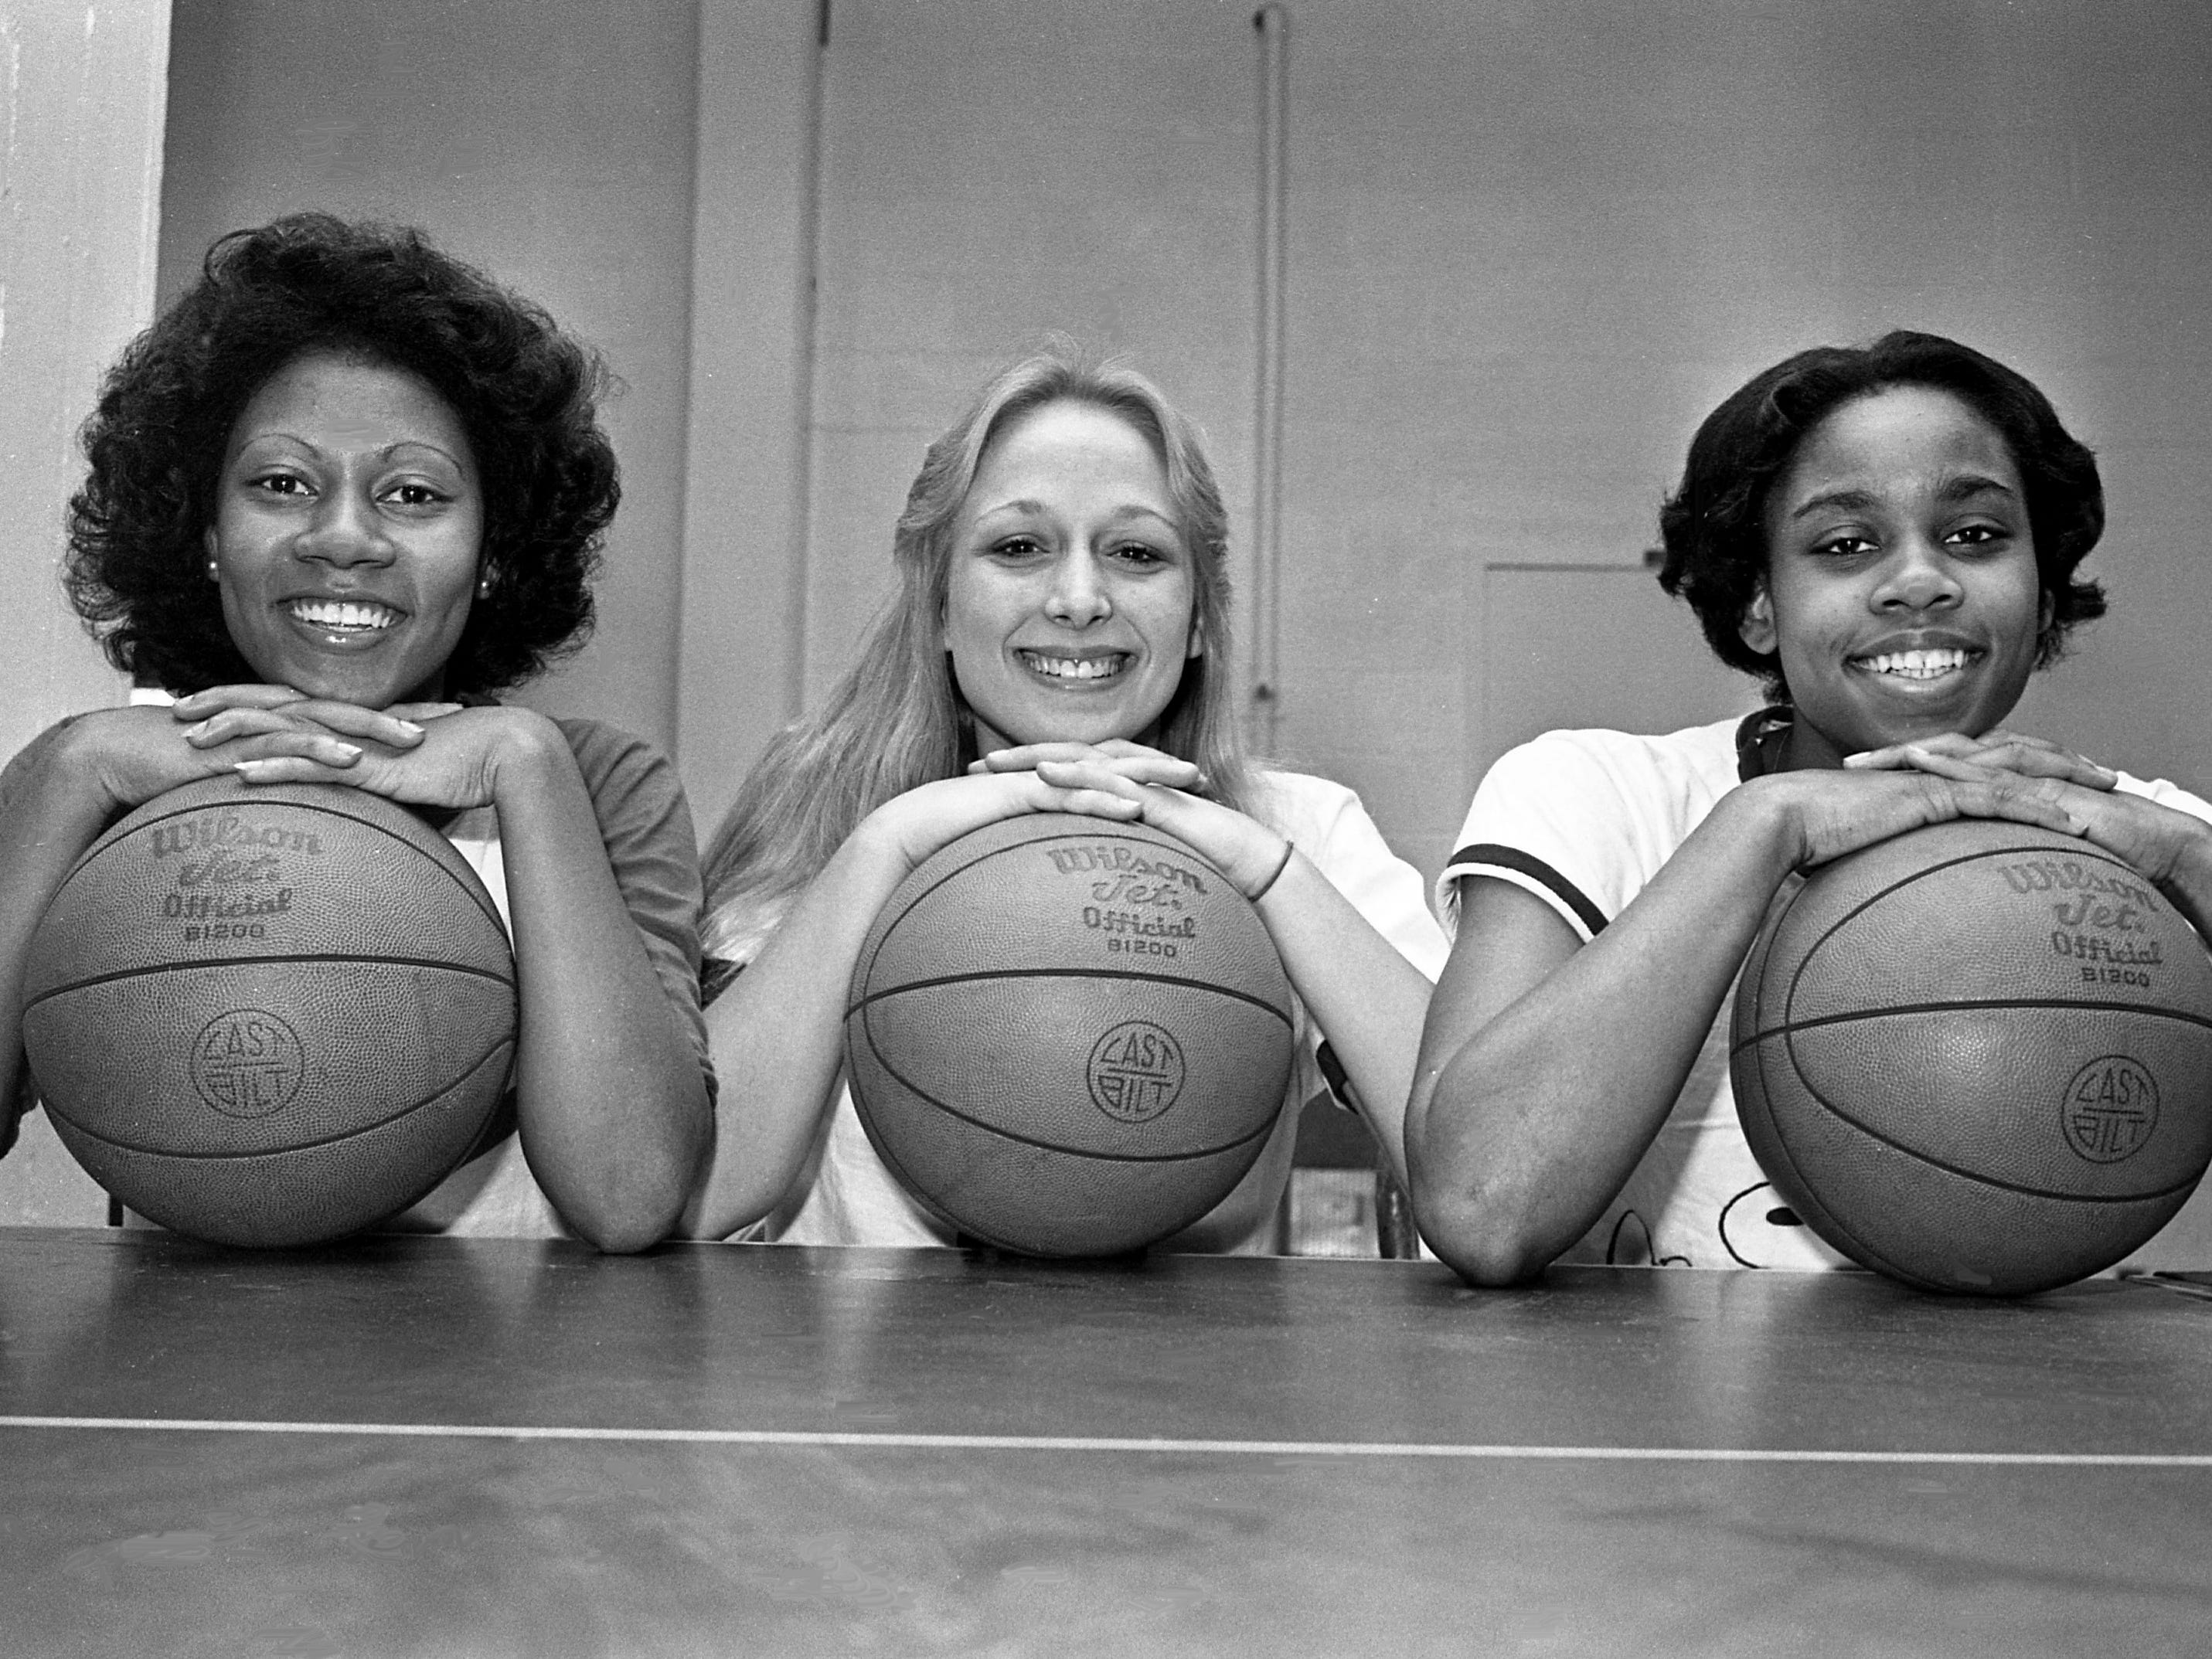 Freshman guard Cathy Bender, left, of Mt. Juliet, has returned from an injury to take her place in line on Jan. 18, 1979,  with Vanderbilt's other standouts, Ann Morrow and Teresa Lawrence. Bender, who has been sidelined with an internal bruise, returned to practice.